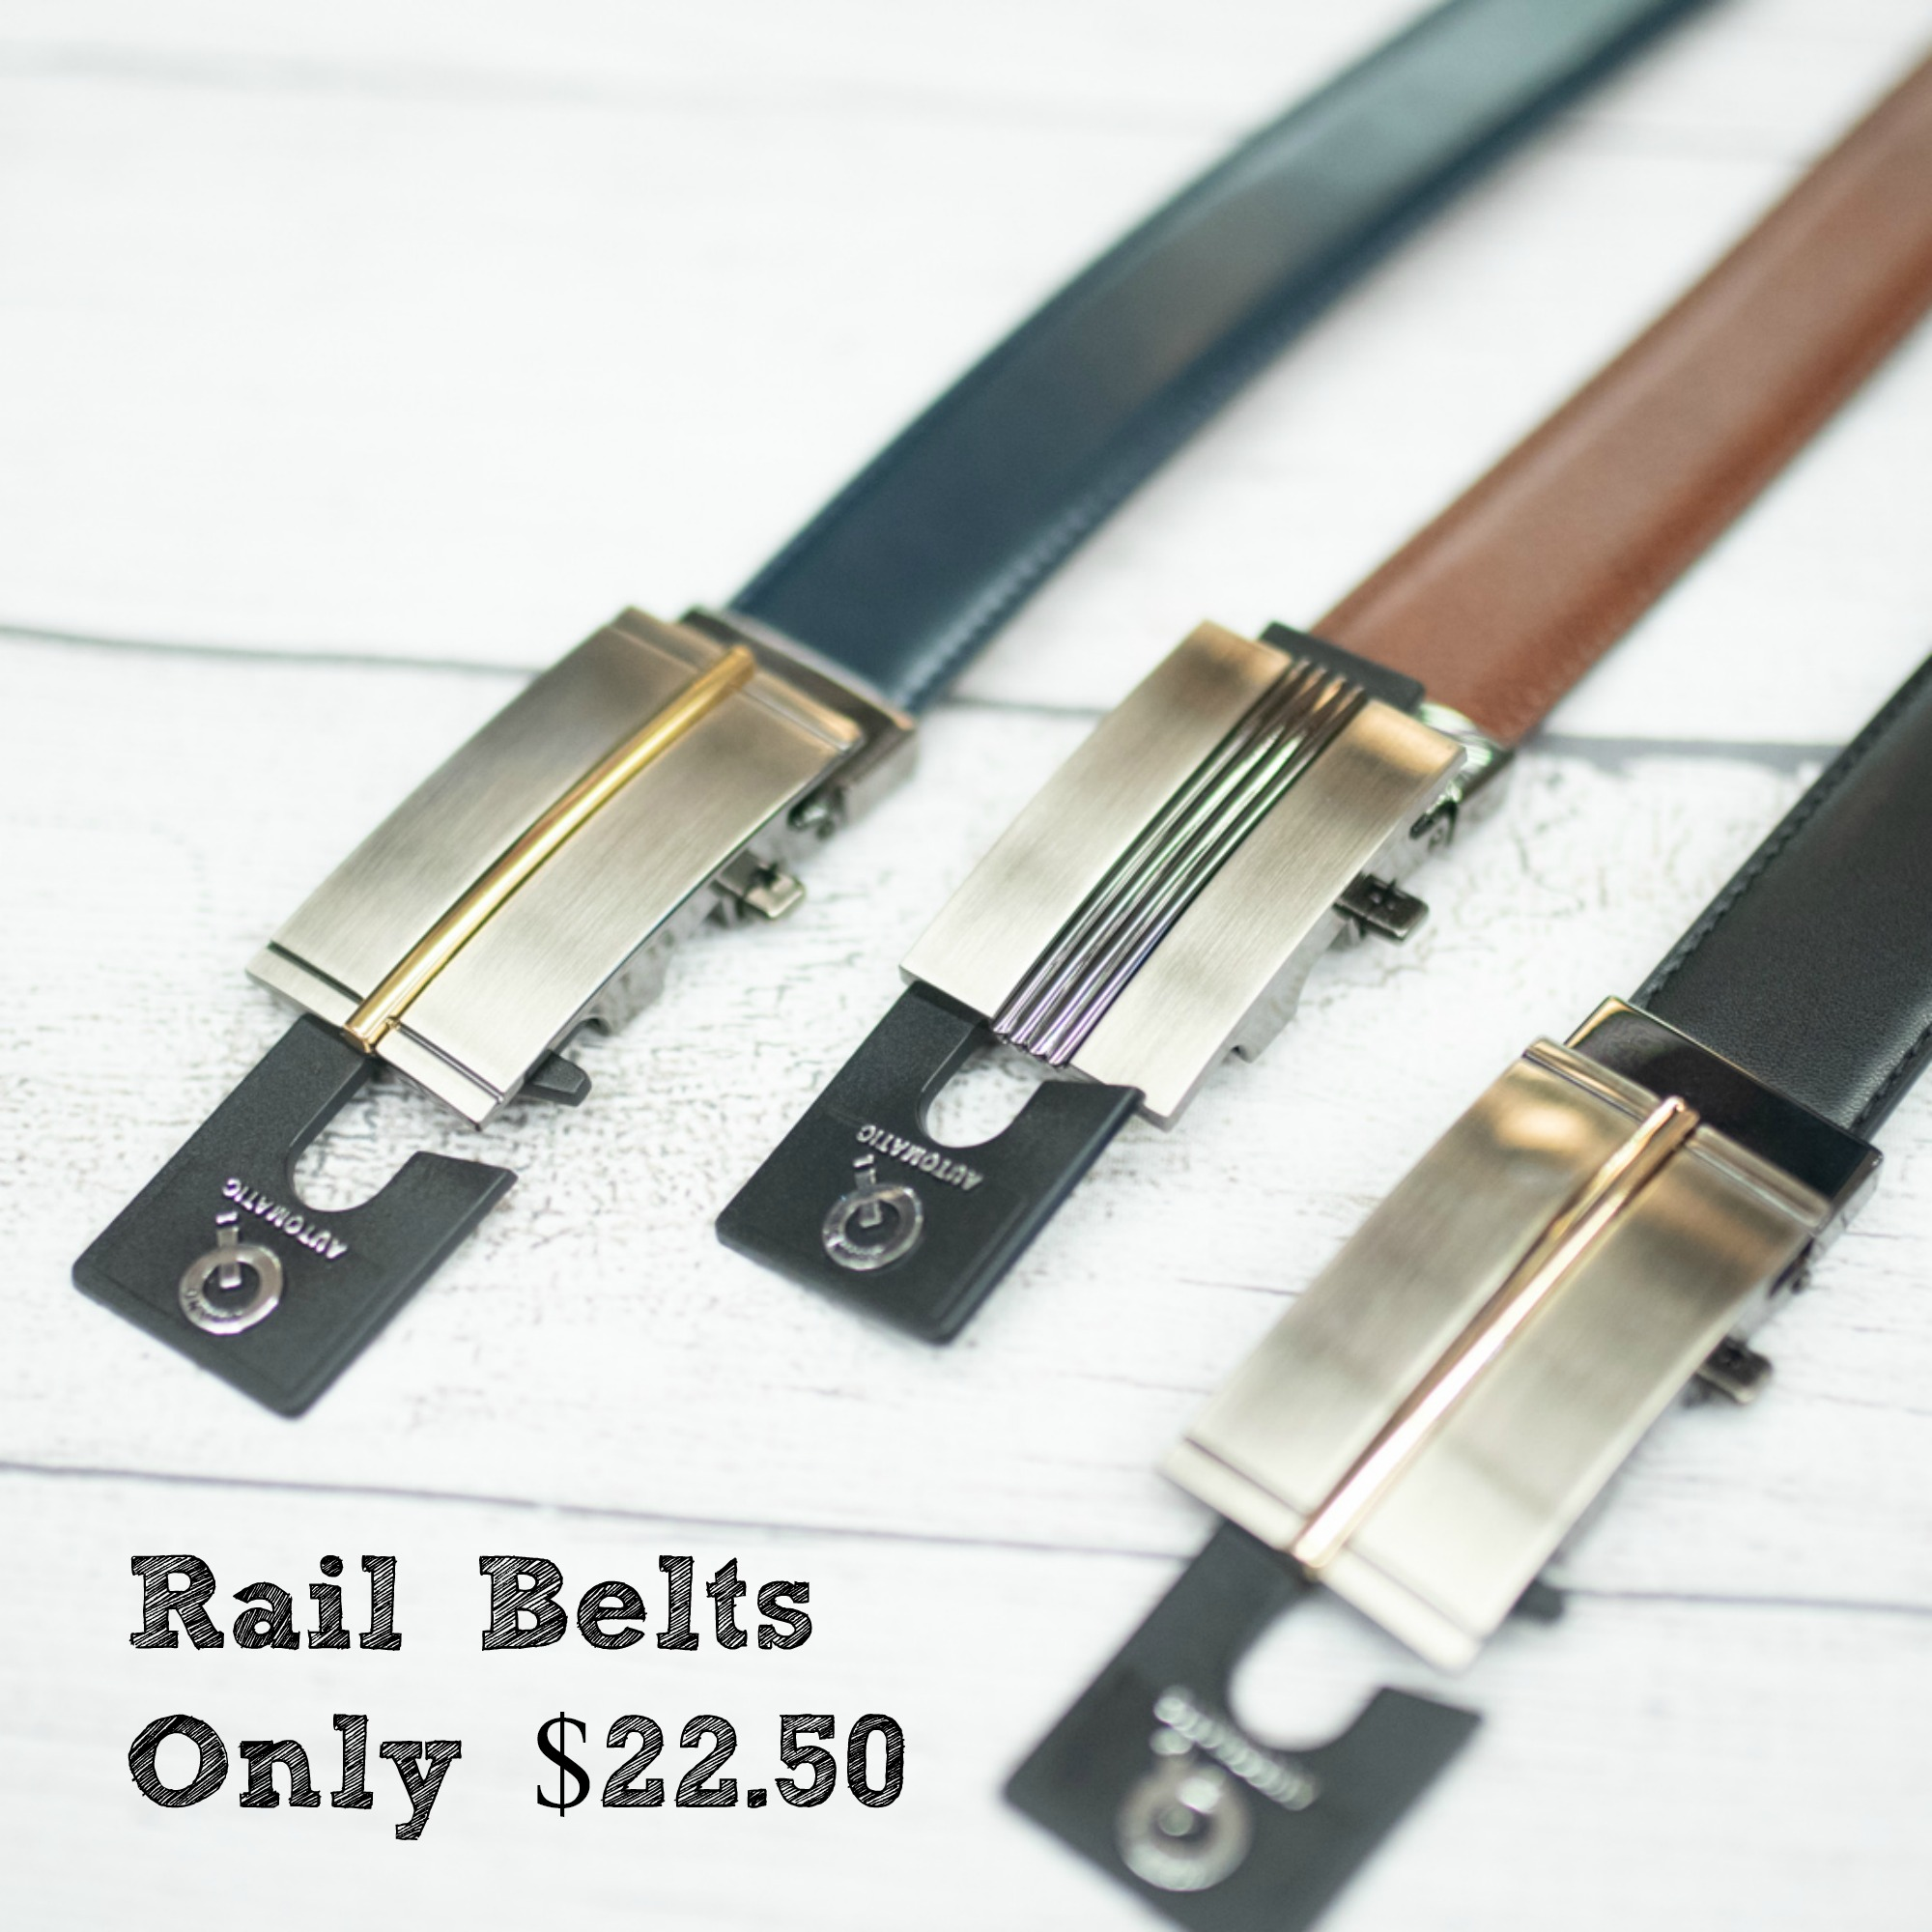 Try a Rail Belt Today!